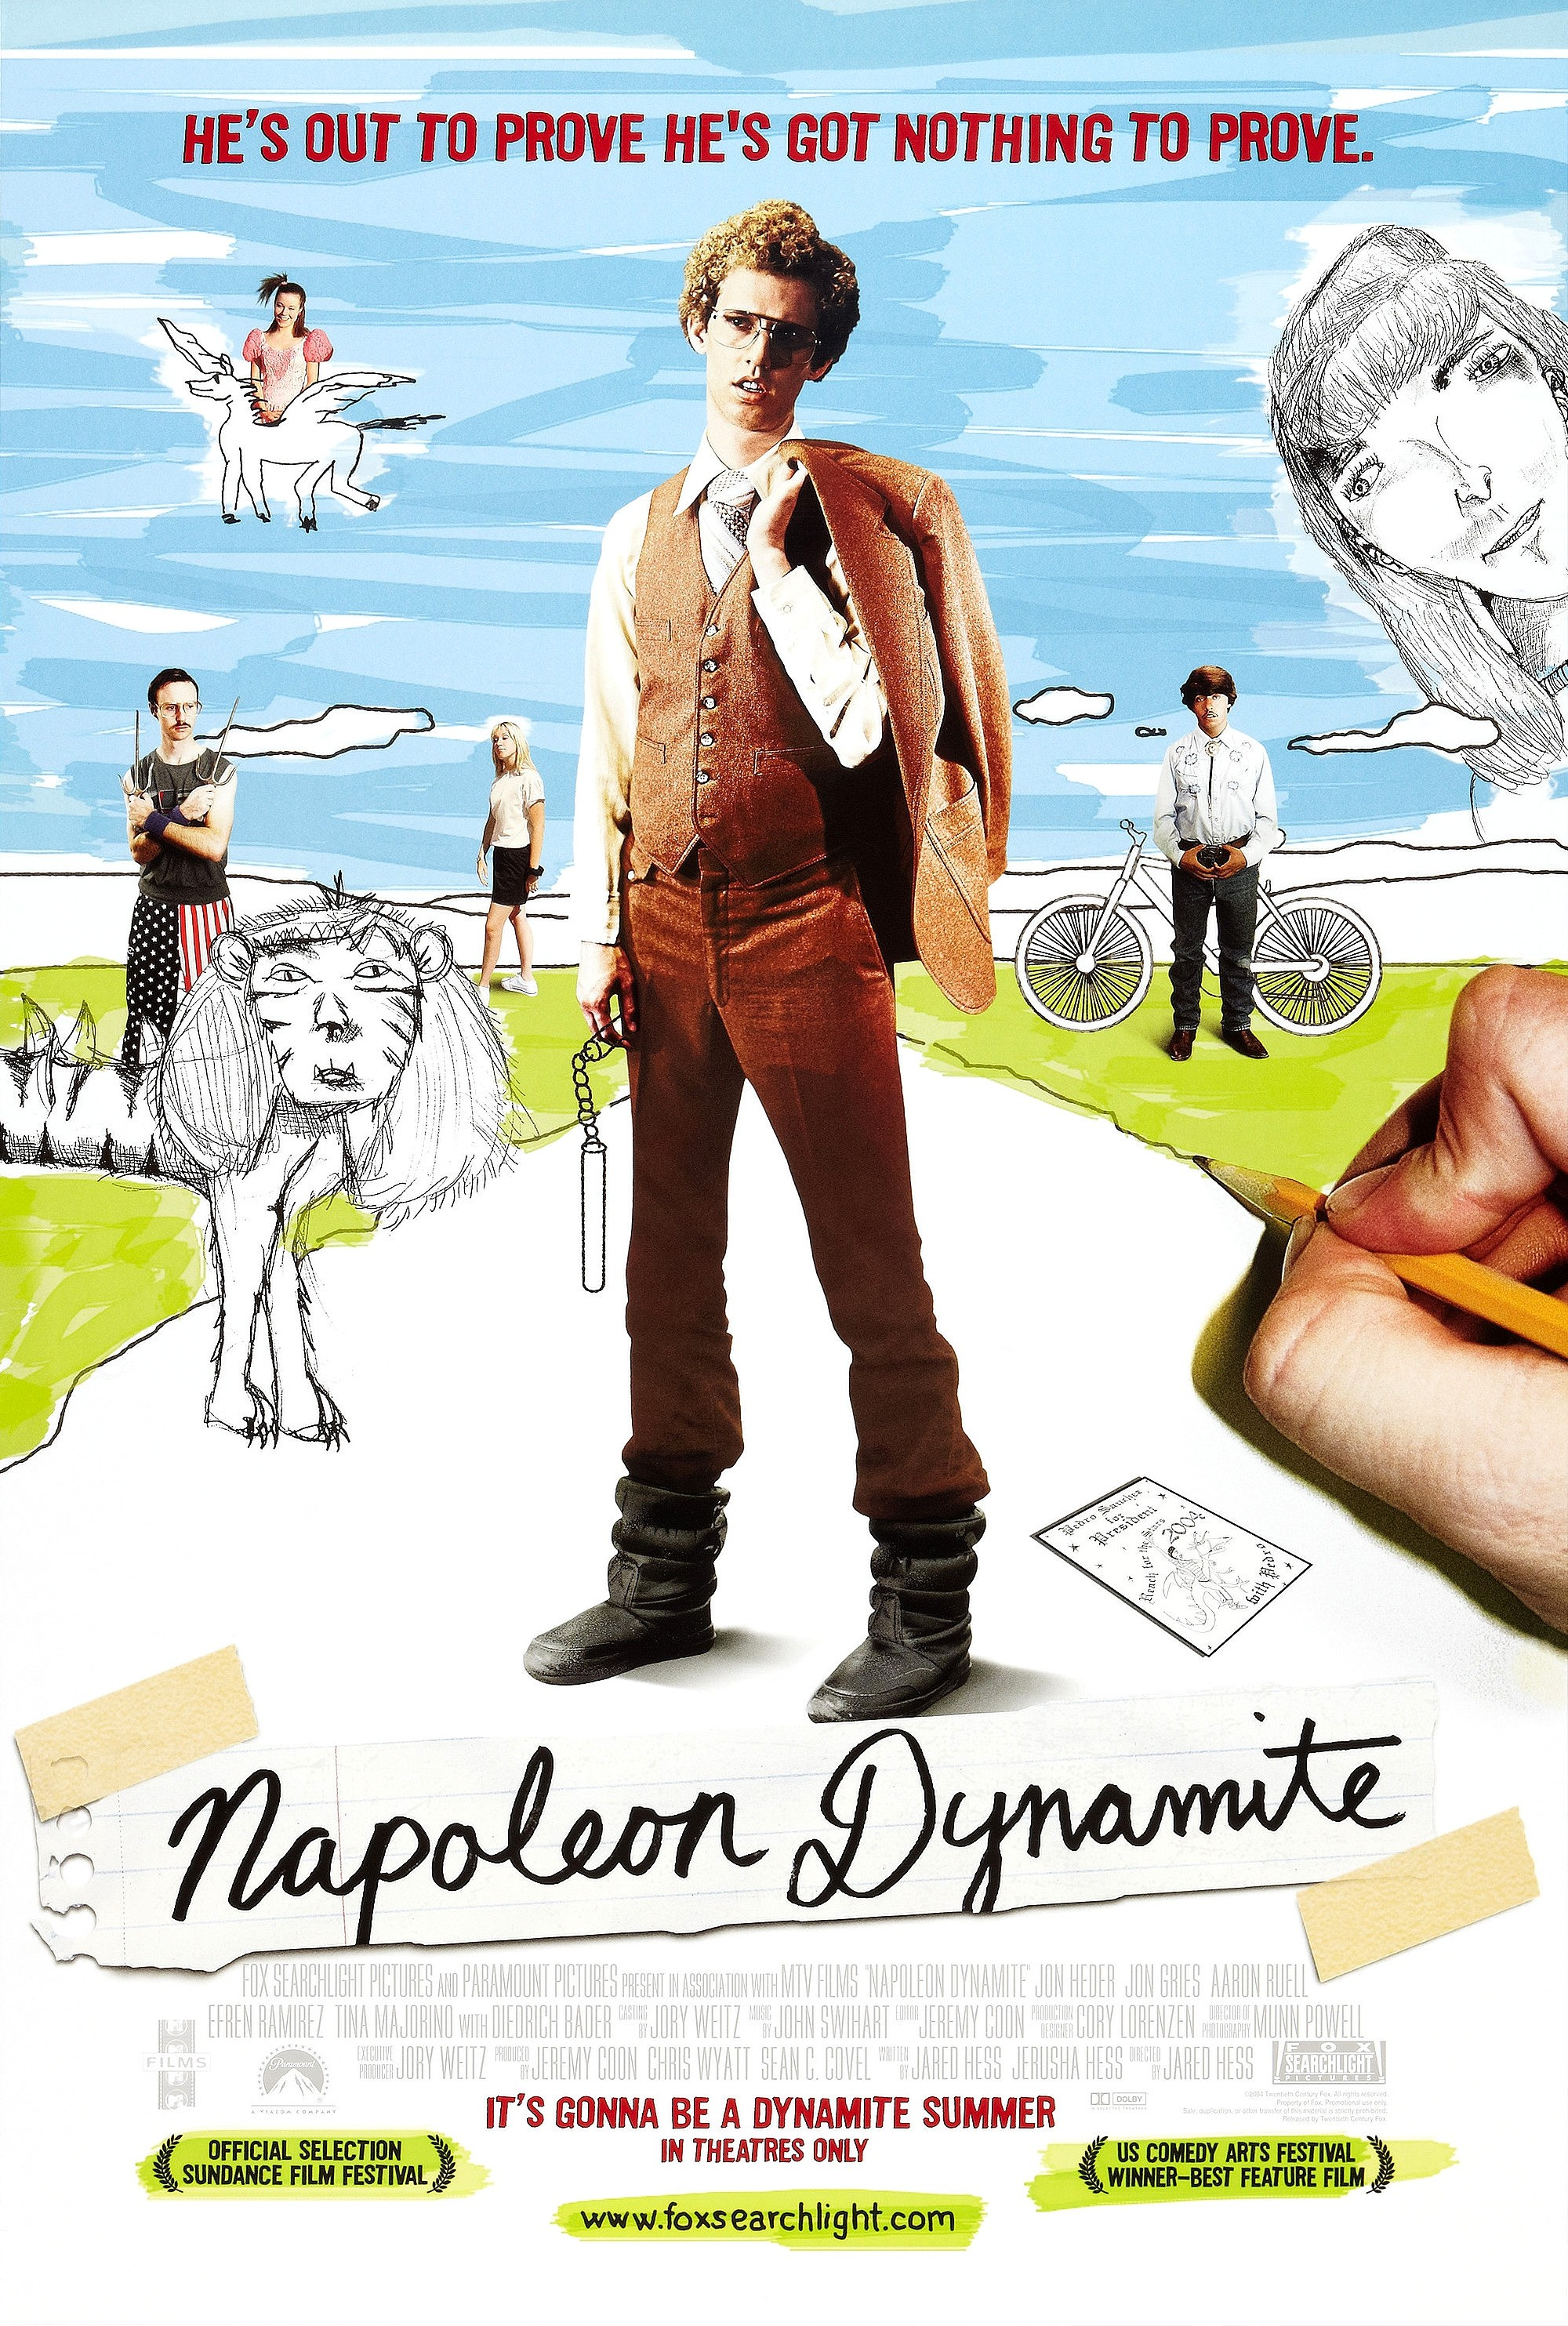 The cult comedy Napoleon Dynamite turns 15 years old this month, a milestone for a movie that became an early breakaway hit in today's era of pop-culture geek celebration. (Photo courtesy of impawards.com)